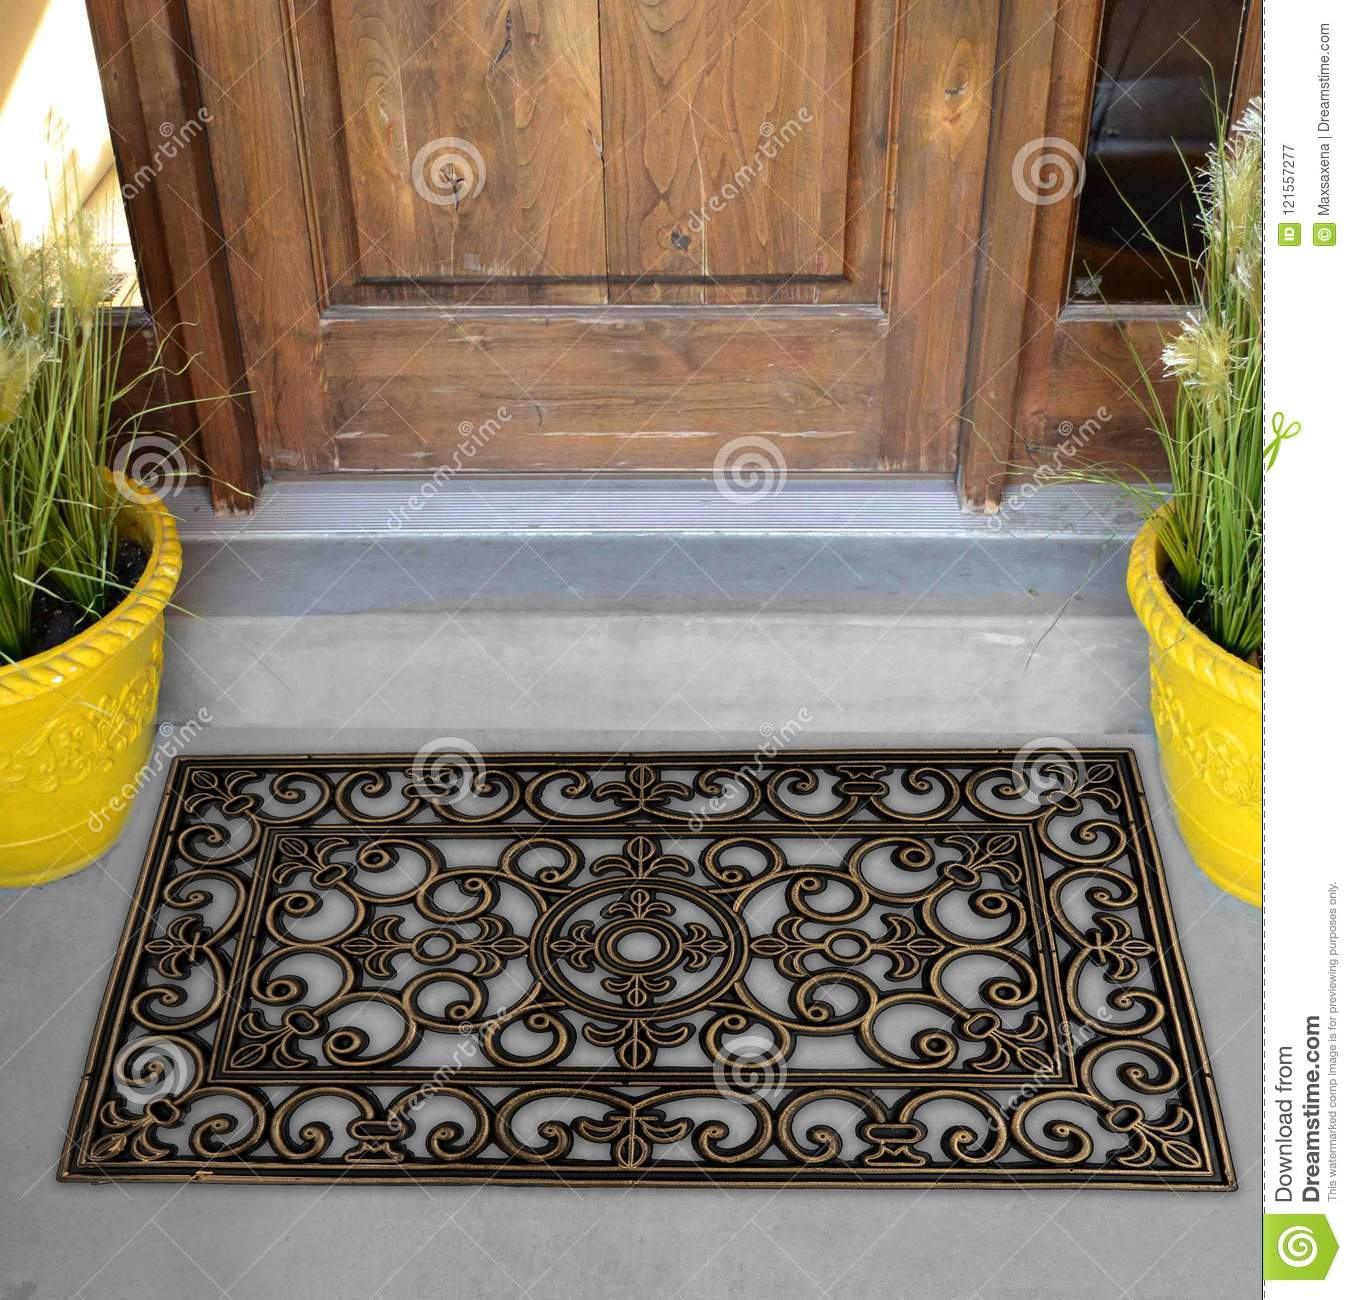 Black Rubber Scraper Floor Mat Indoor Outdoor Door Mat Outside Home With  Yellow Flowers And Leaves